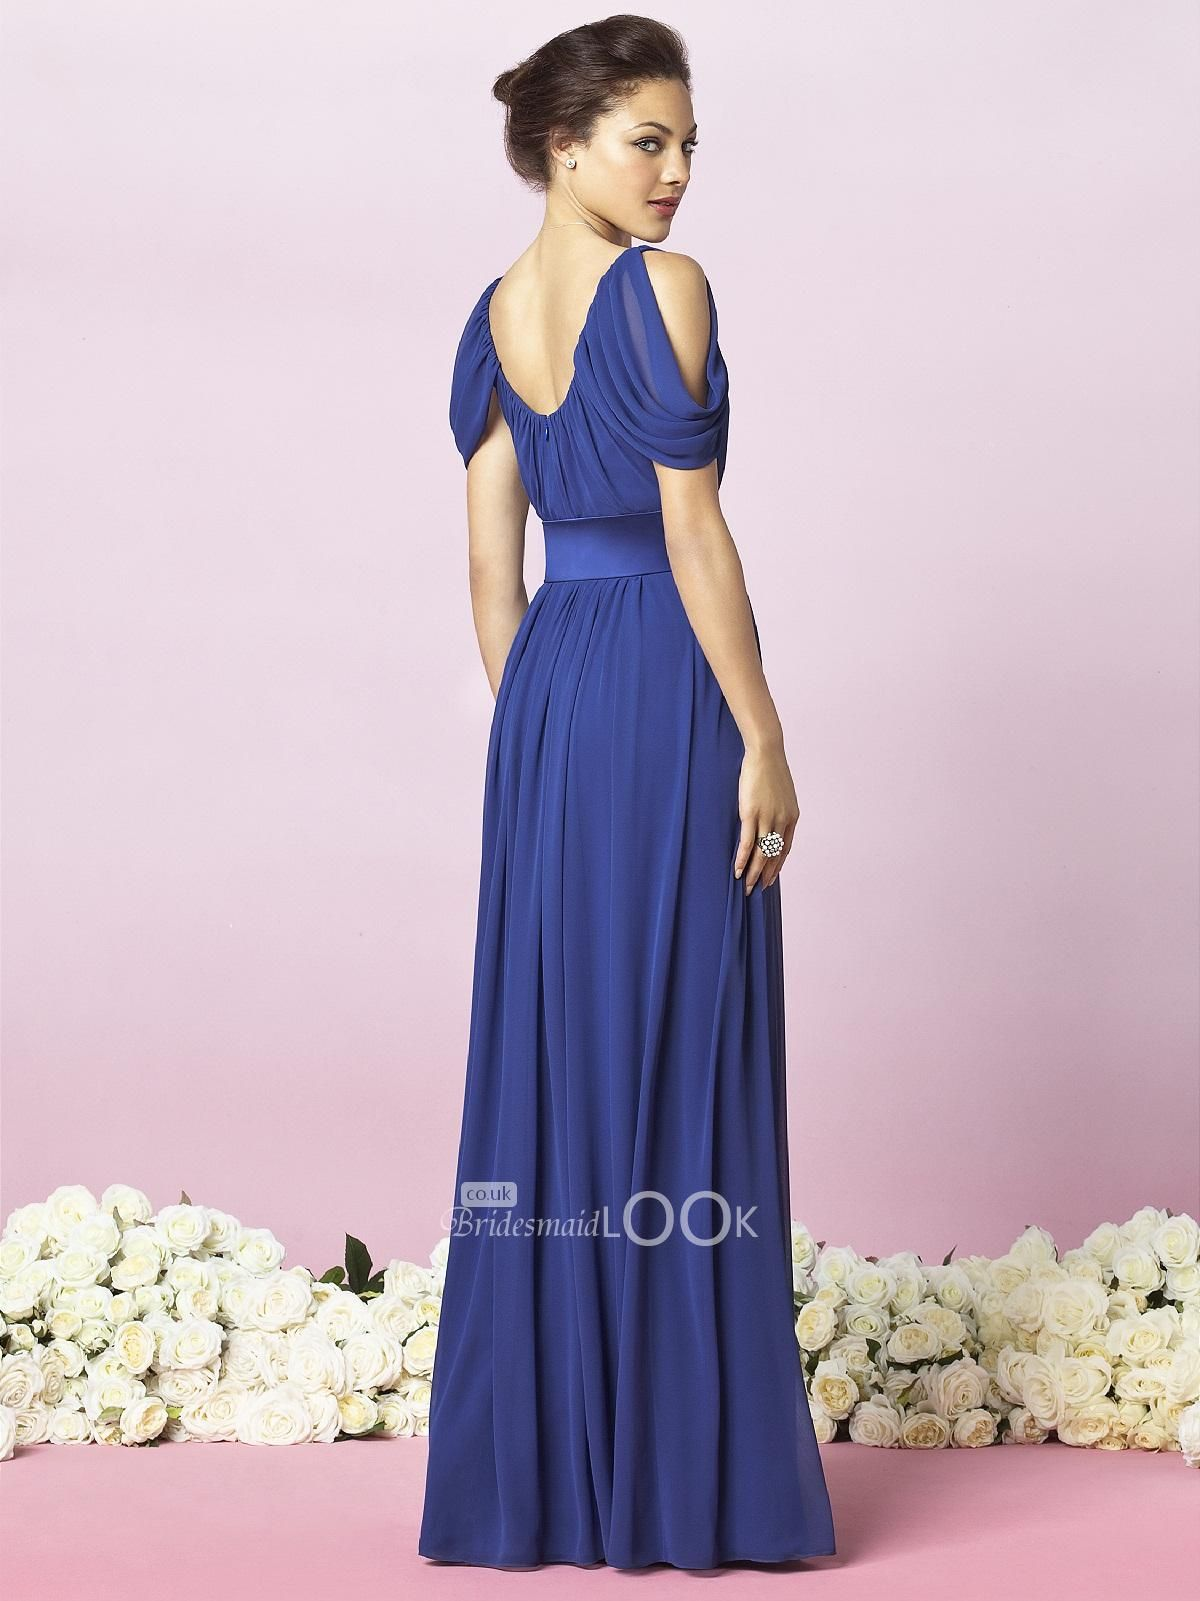 Blue Bridesmaid Dresses Long Dress With D Sleeve Bridesmaidlook Co